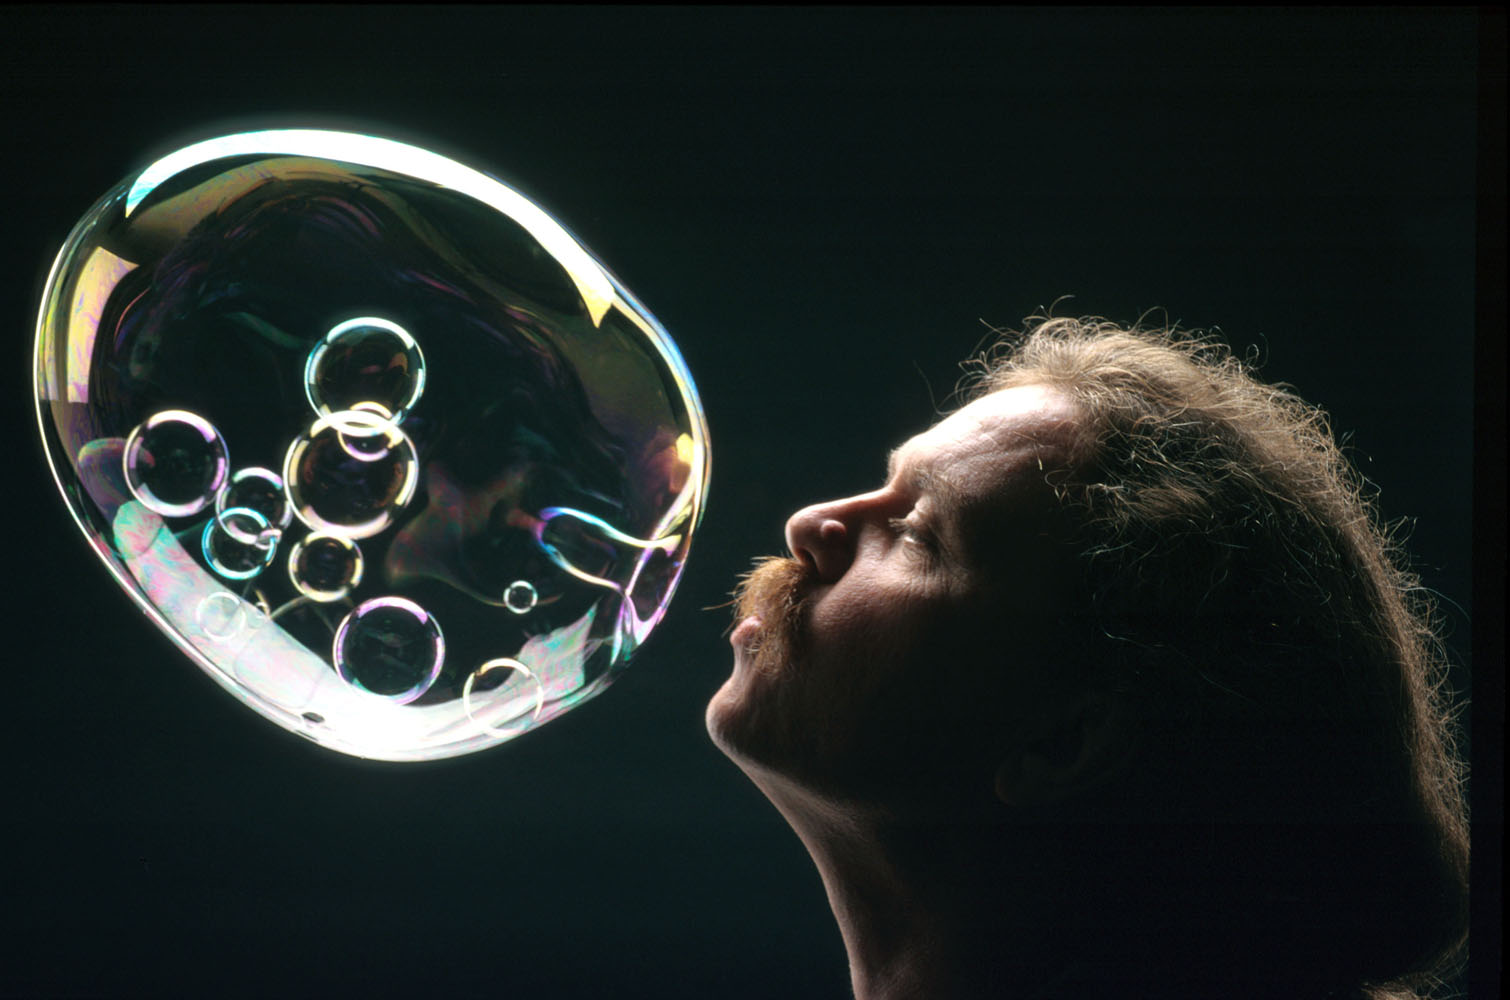 America's Bubble Guy Tom Noddy blows an intricate bubble